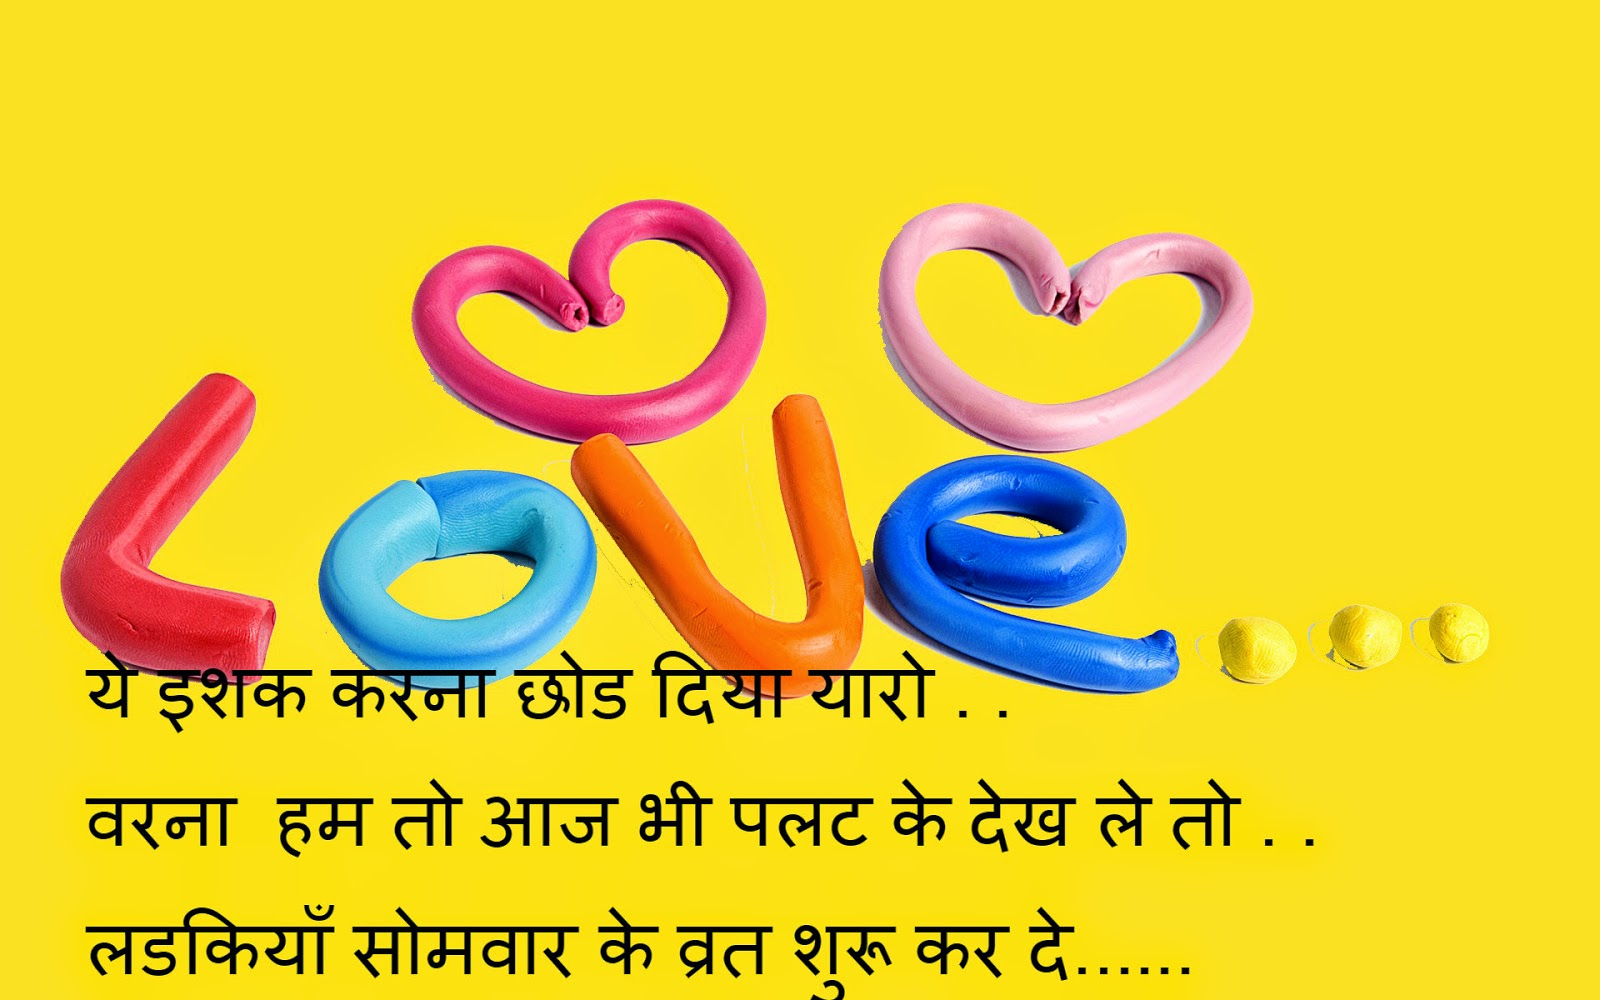 Simple Wallpaper Love Friend - Top30%2BHindi%2BShayari%2BSms%2BLove%2BFriendship%2BHindi%2BShayari%2BImpages%2BPics%2Bhd%2BWallpapers%2B13  Perfect Image Reference_43999.jpg